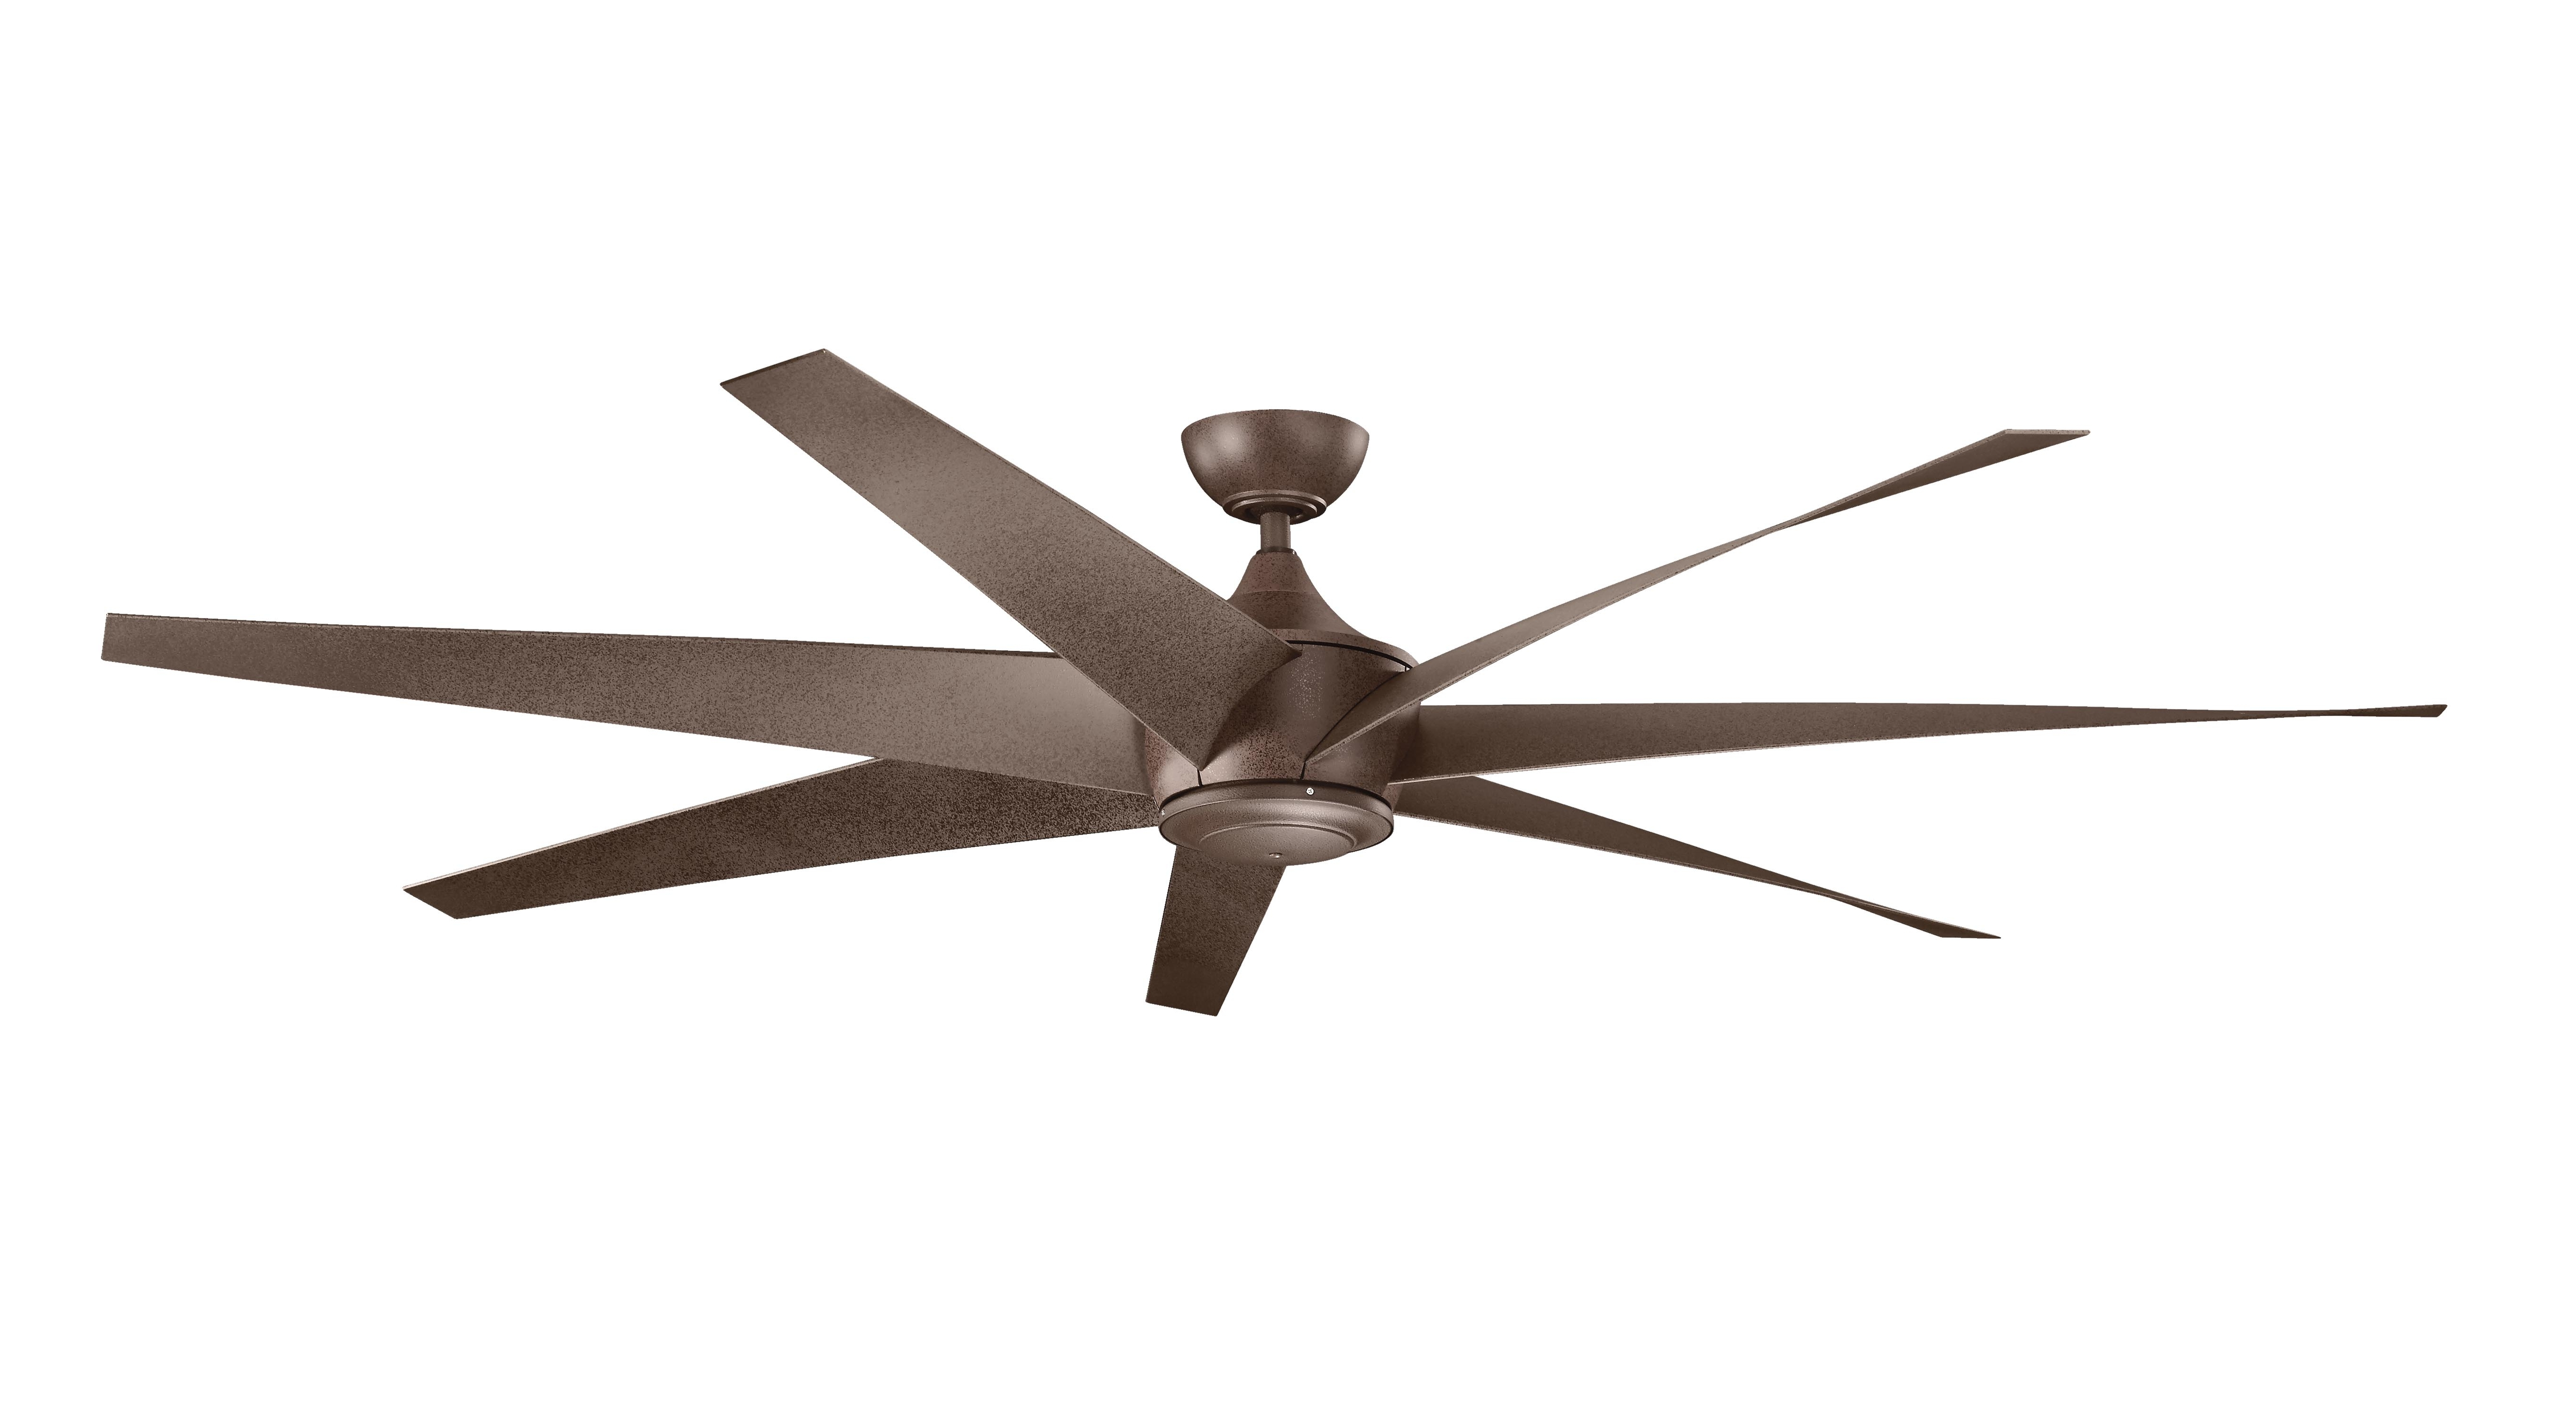 Well Liked Kichler Lehr Wet Climate Dc Ceiling Fan – New For 2016 Pertaining To Outdoor Ceiling Fans At Kichler (View 8 of 20)